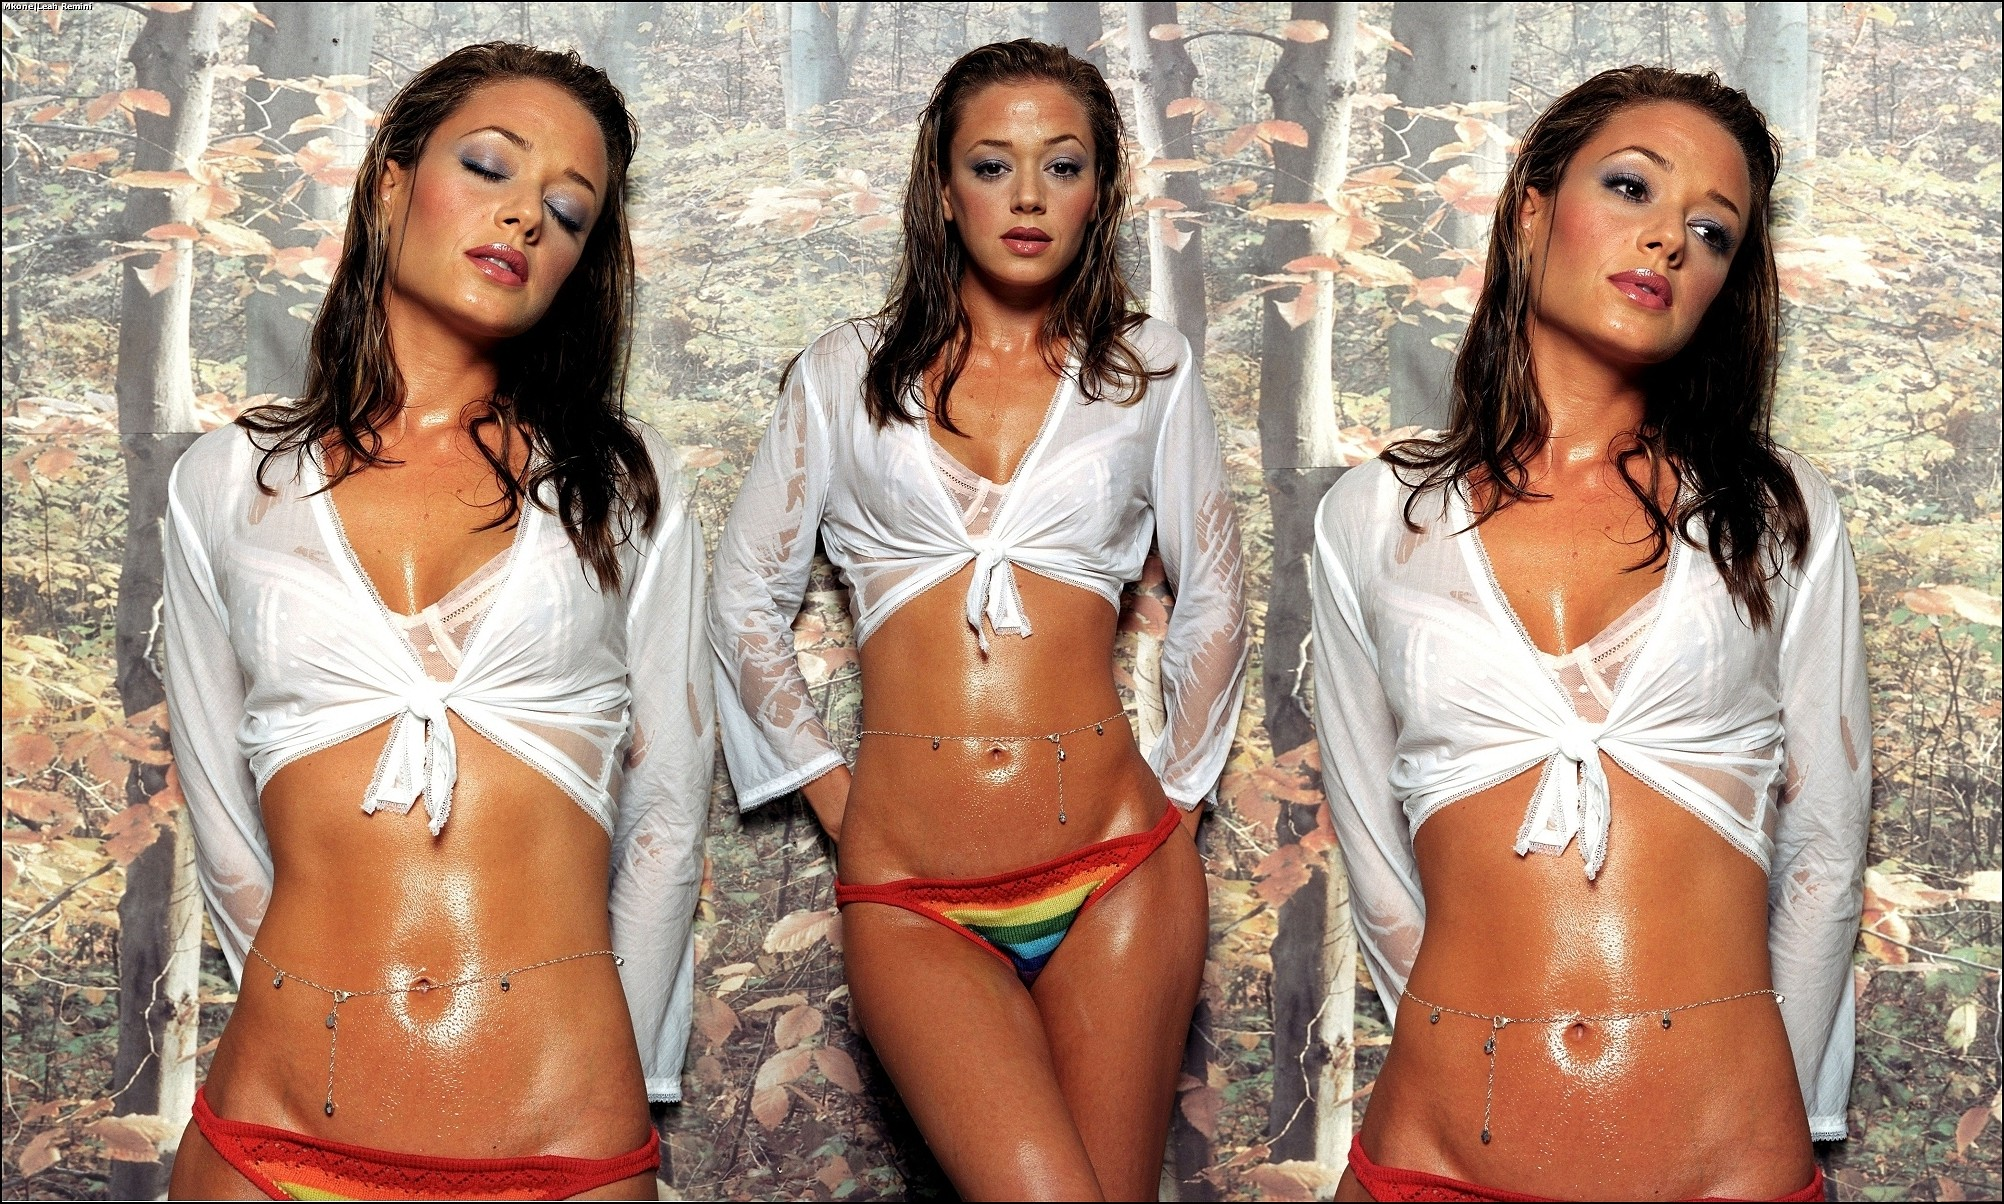 http://pictures.platinum-celebs.com/leah-remini-nude-photo.jpg